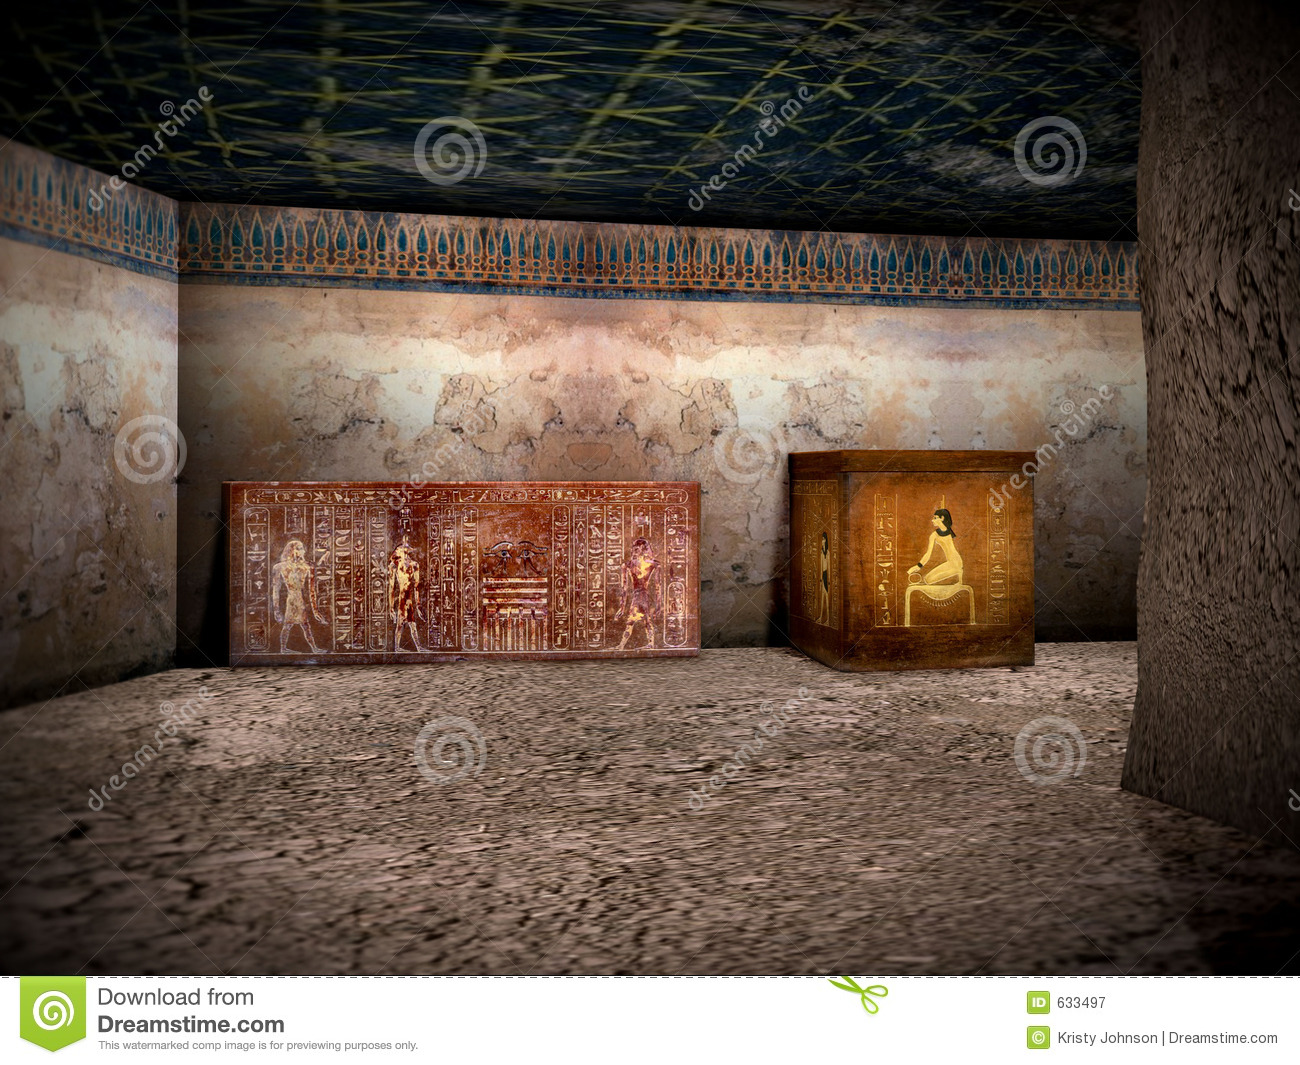 Tombs of Egypt 2